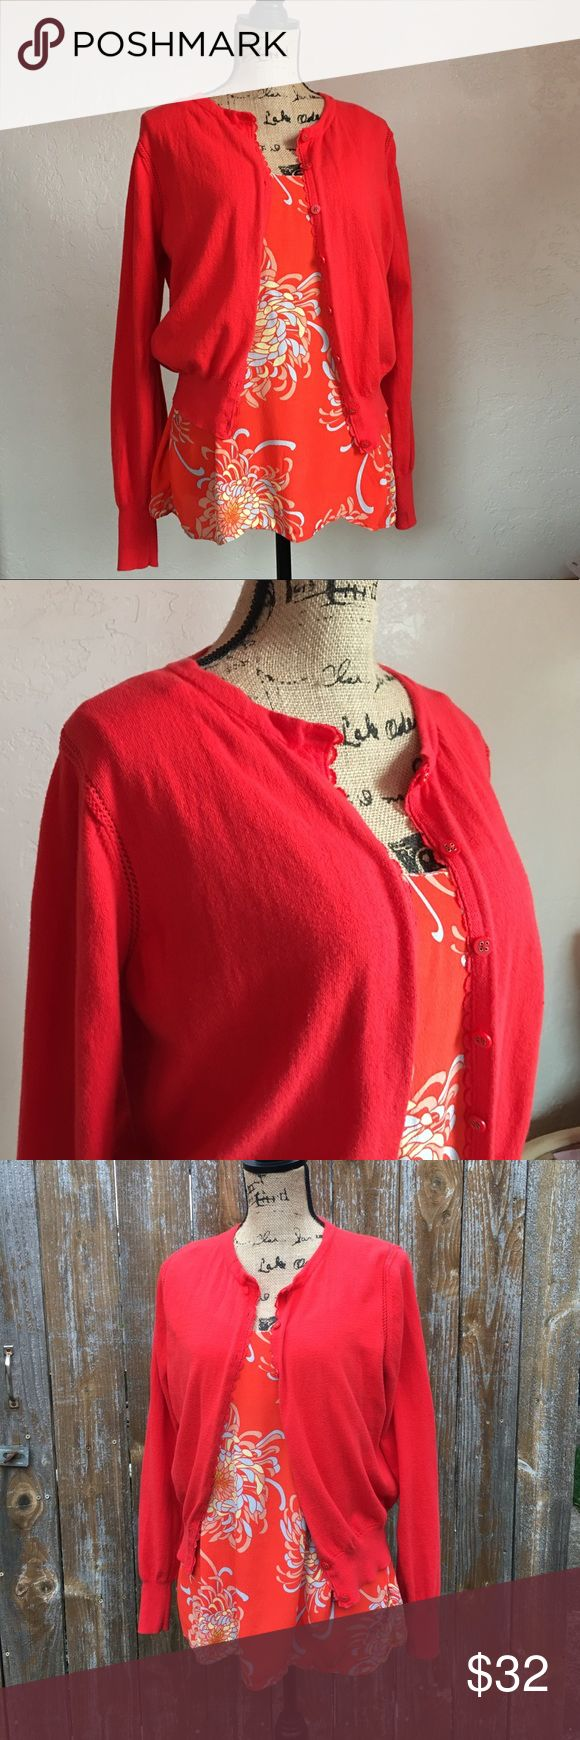 🌷CAbi🌷 Camisole/Cardigan Seat Orange Style #297 Vibrant Orange 🍊 CAbi 🍊Cardigan and Camisole! Gently used. 👉🏻Cardigan size XL, Camisole is size Large👈🏻 There is a little fabric balling under the arms, see photo #8.  Approximate Measurements in Inches: CAbi Cardigan Length 19.5 Chest 19 3/4 Seat 13 Sleeve 29 (including shoulder)  CAbi tank Camisole Length 19.5 Waist 21 Seat 22 CAbi Tops Camisoles